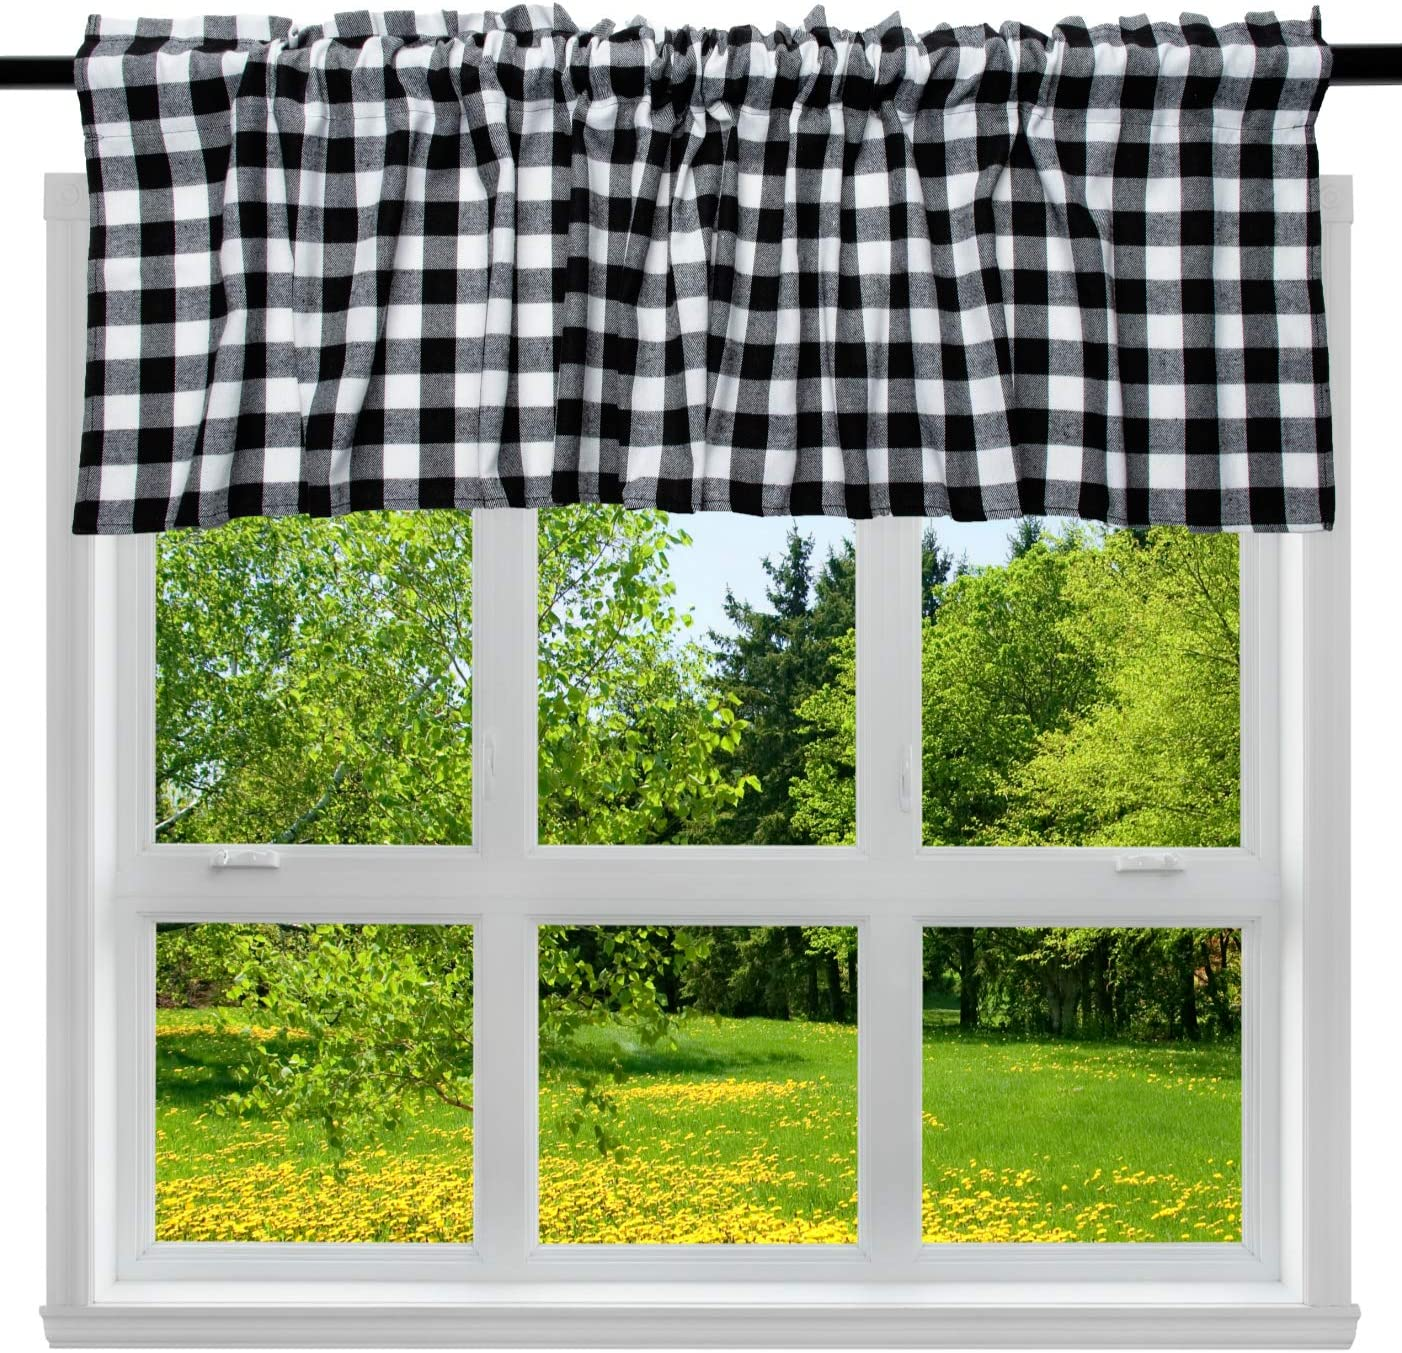 "2 Pack Buffalo Check Plaid Cotton Window Valances White and Black Farmhouse Design Window Treatment Lined Decor Curtains Rod Pocket Valances for Kitchen/Living Room 16"" x 56"""